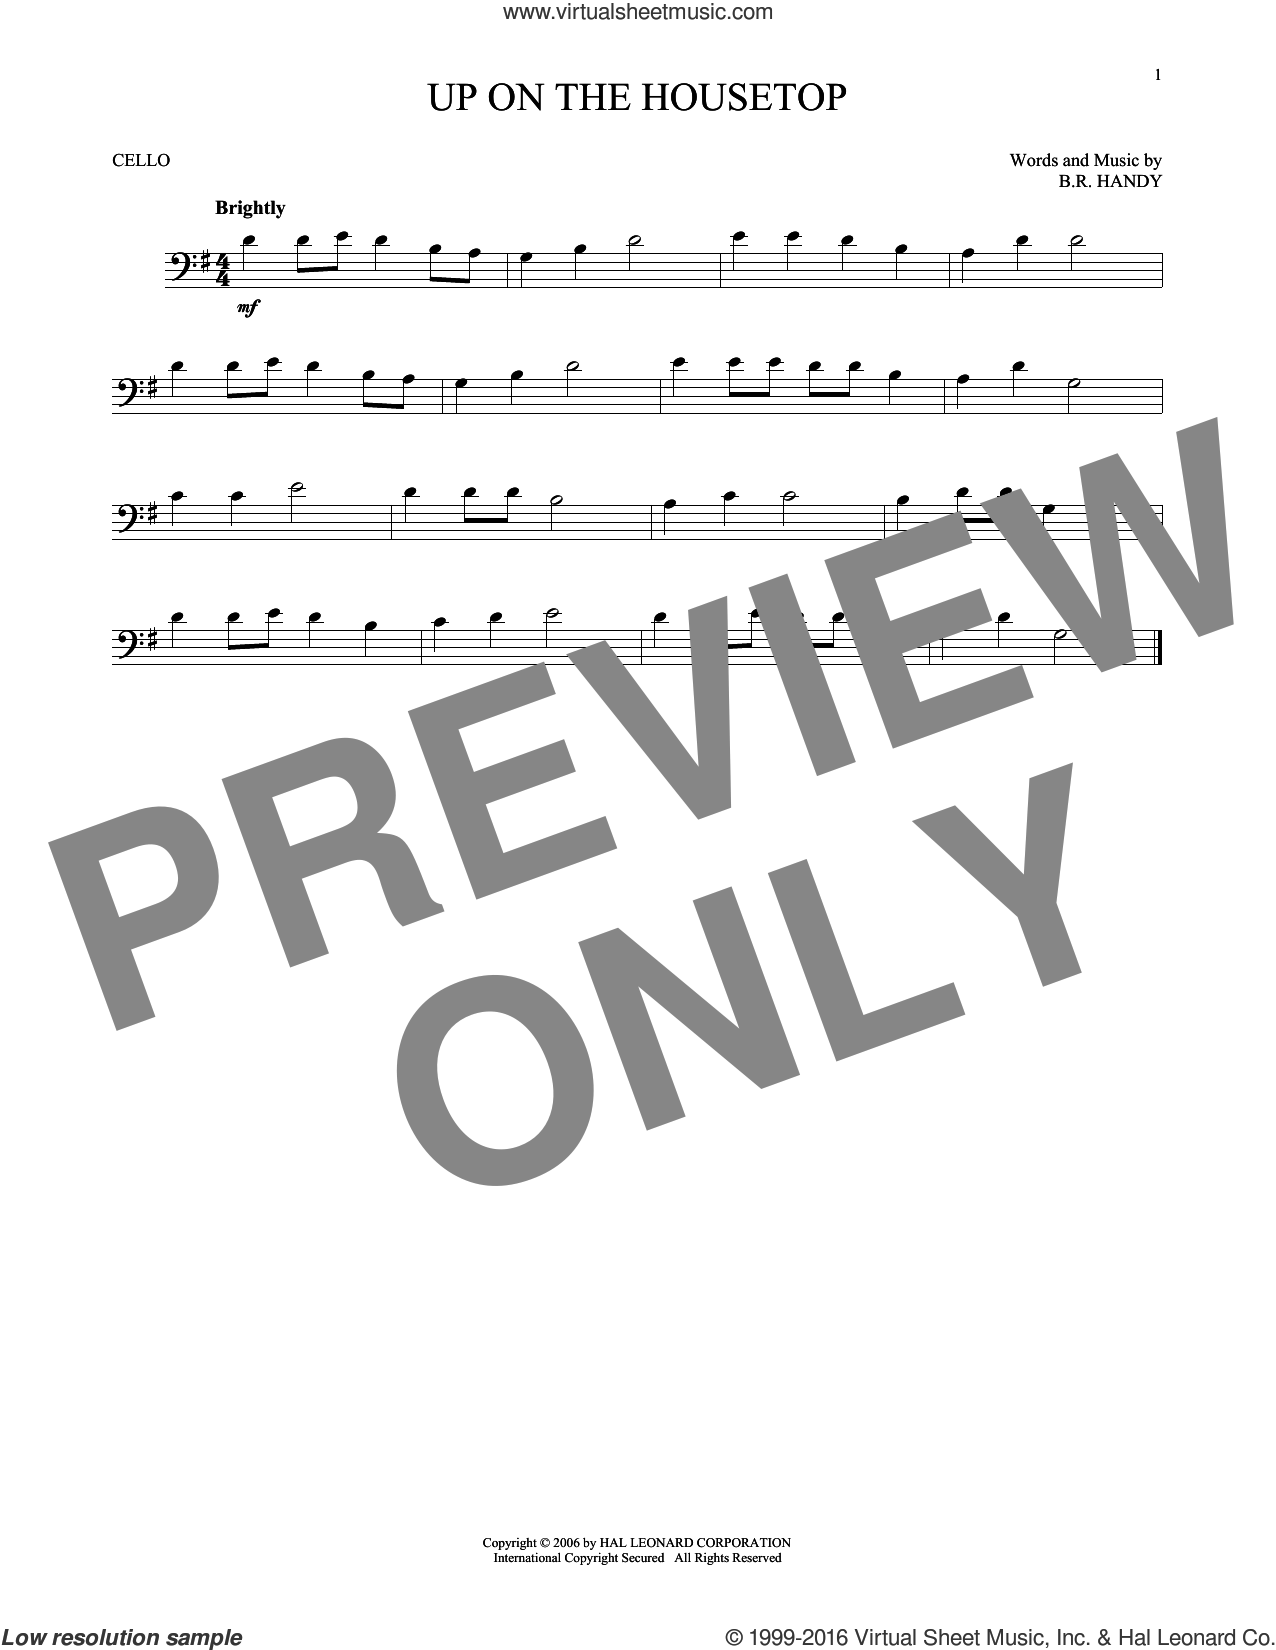 Up On The Housetop sheet music for cello solo by Benjamin Hanby, intermediate skill level